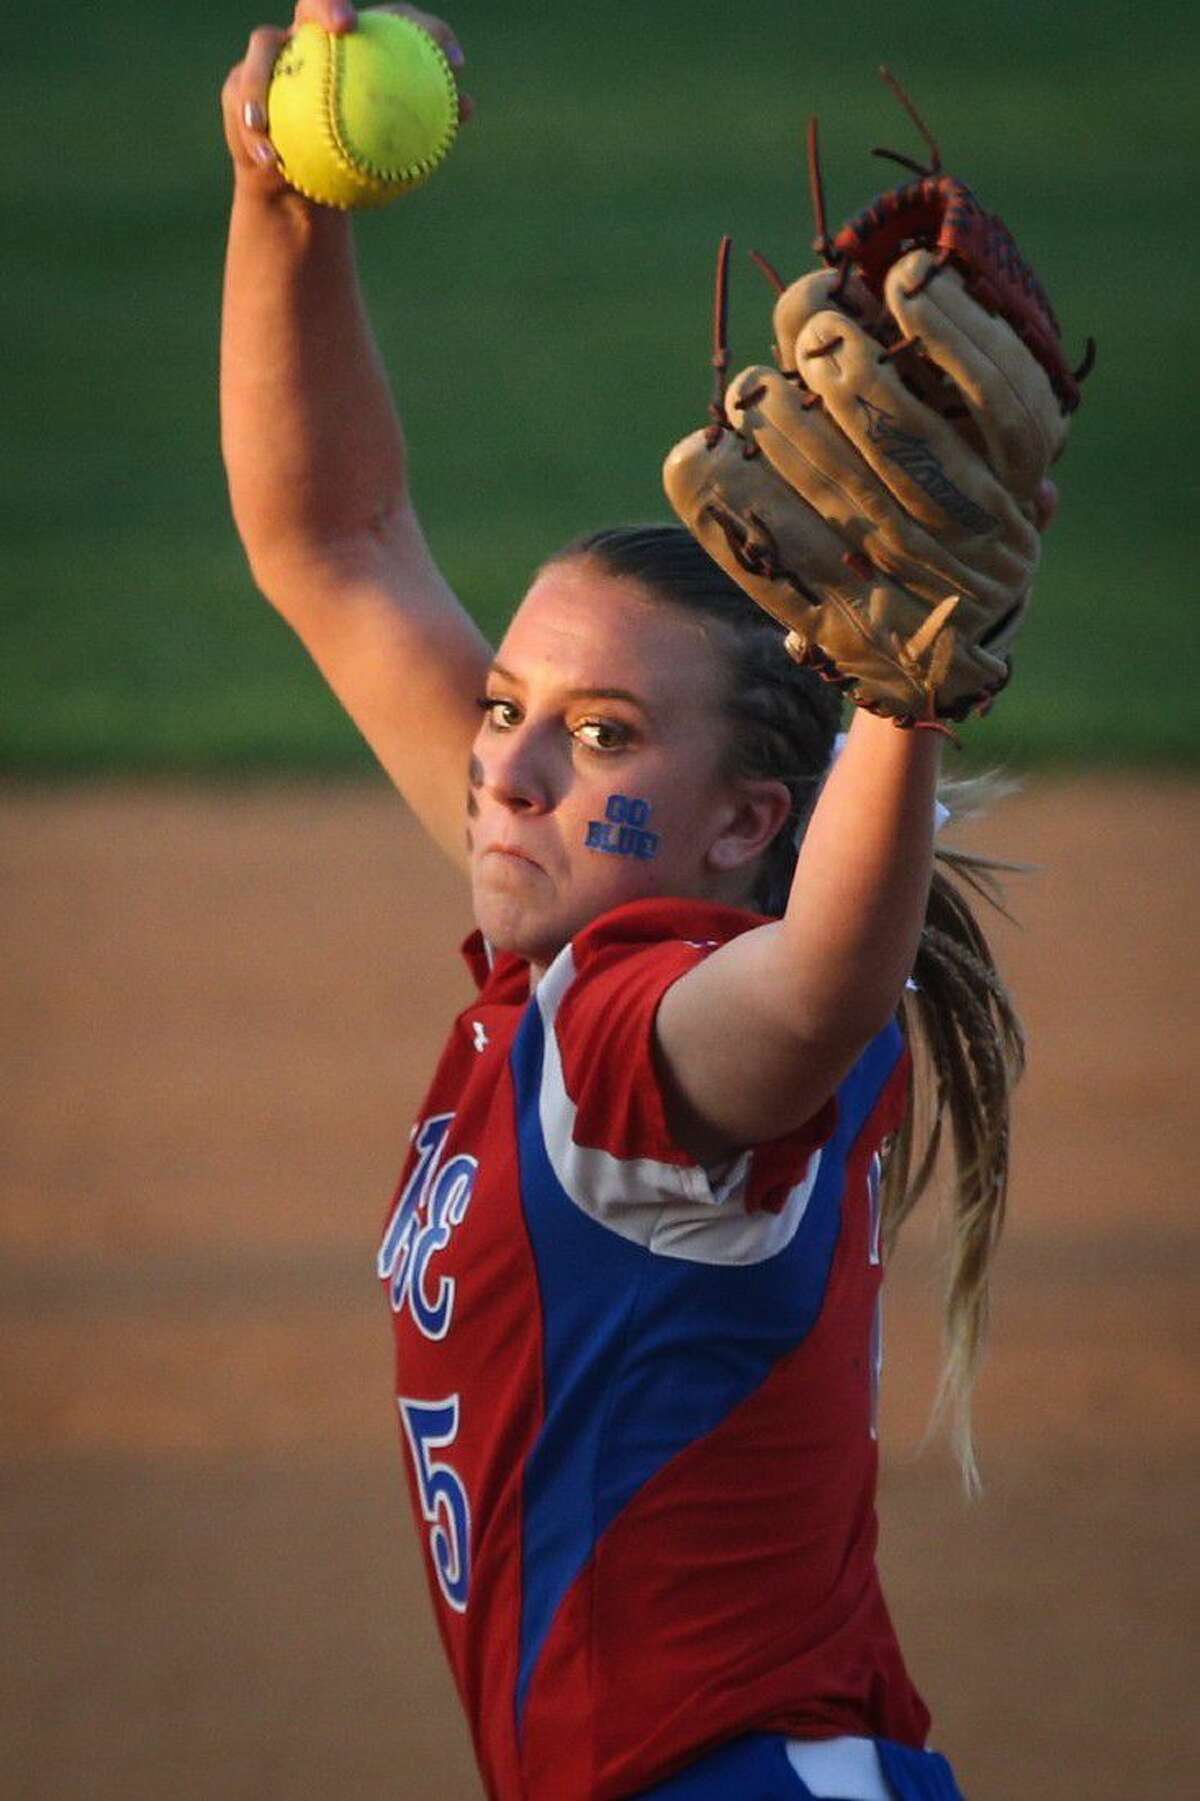 Oak Ridge's Carlie Darnell (5) throws a pitch during the high school softball game against Austin Bowie on Friday, May 6, 2016, at Oak Ridge High School. To view more photos from the game, go to HCNPics.com.